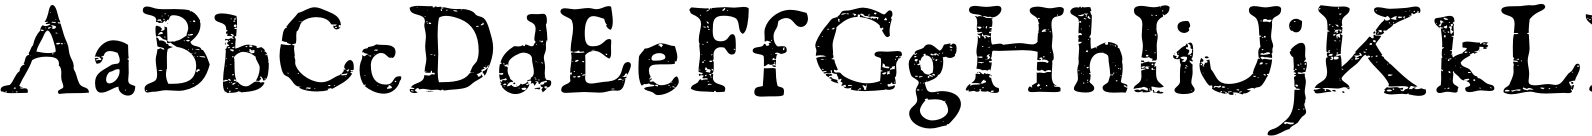 El Franco Distressed Font